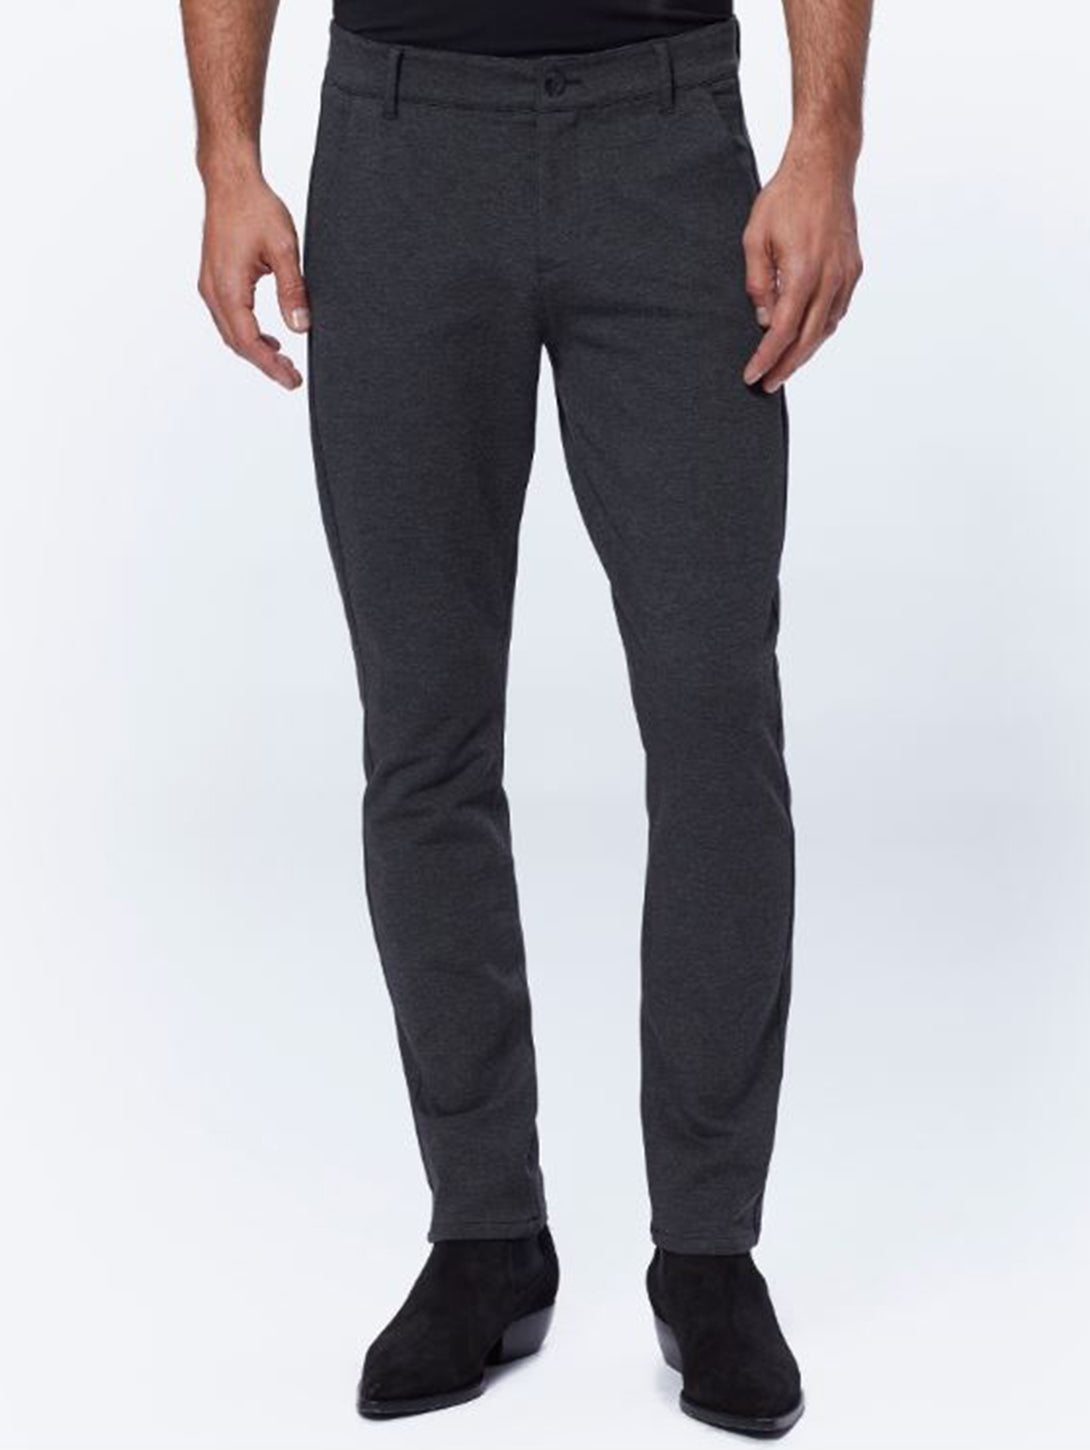 Stafford Slim Pant in Iced Black-Paige-Over the Rainbow